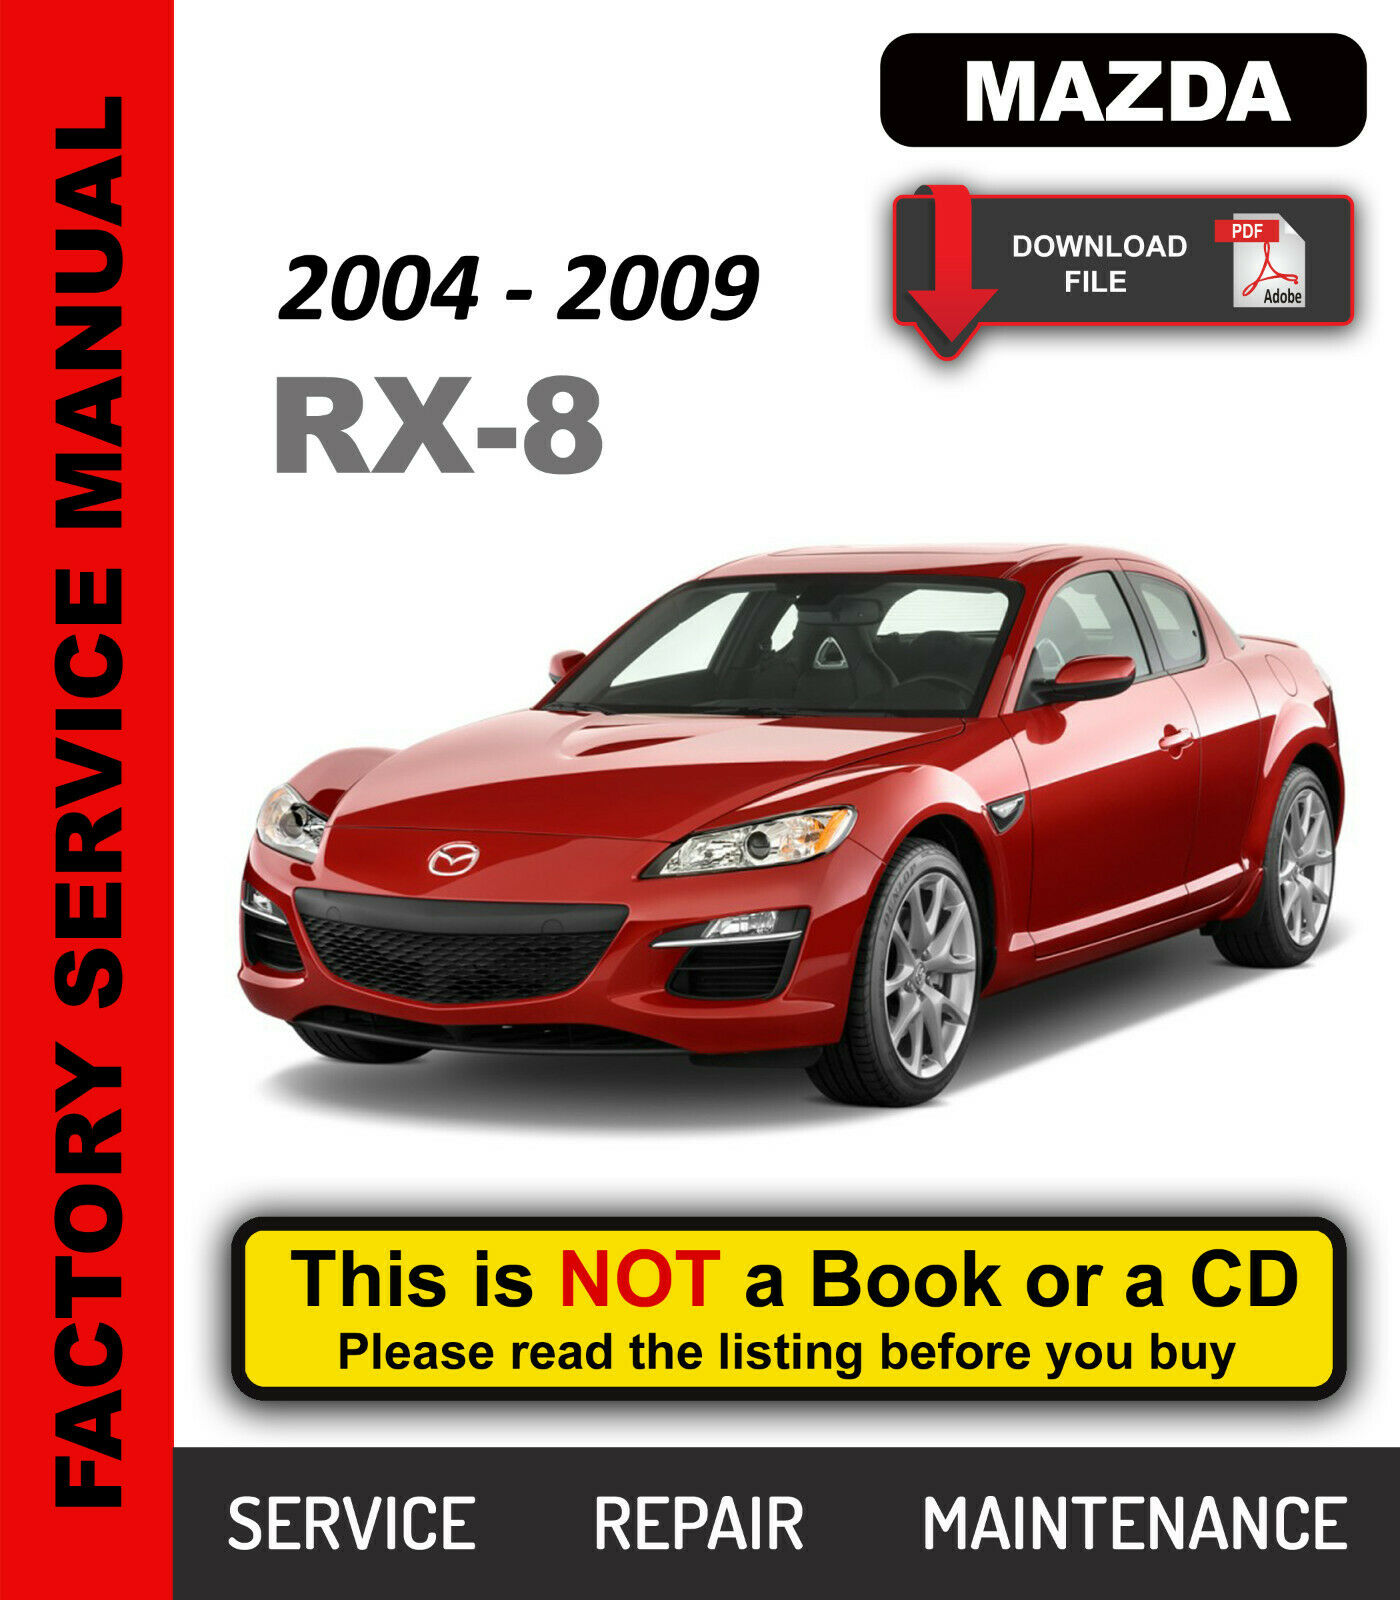 Mazda RX-8 2004-2009 Service Repair Workshop Maintenance Manual 1 of 10FREE  Shipping ...